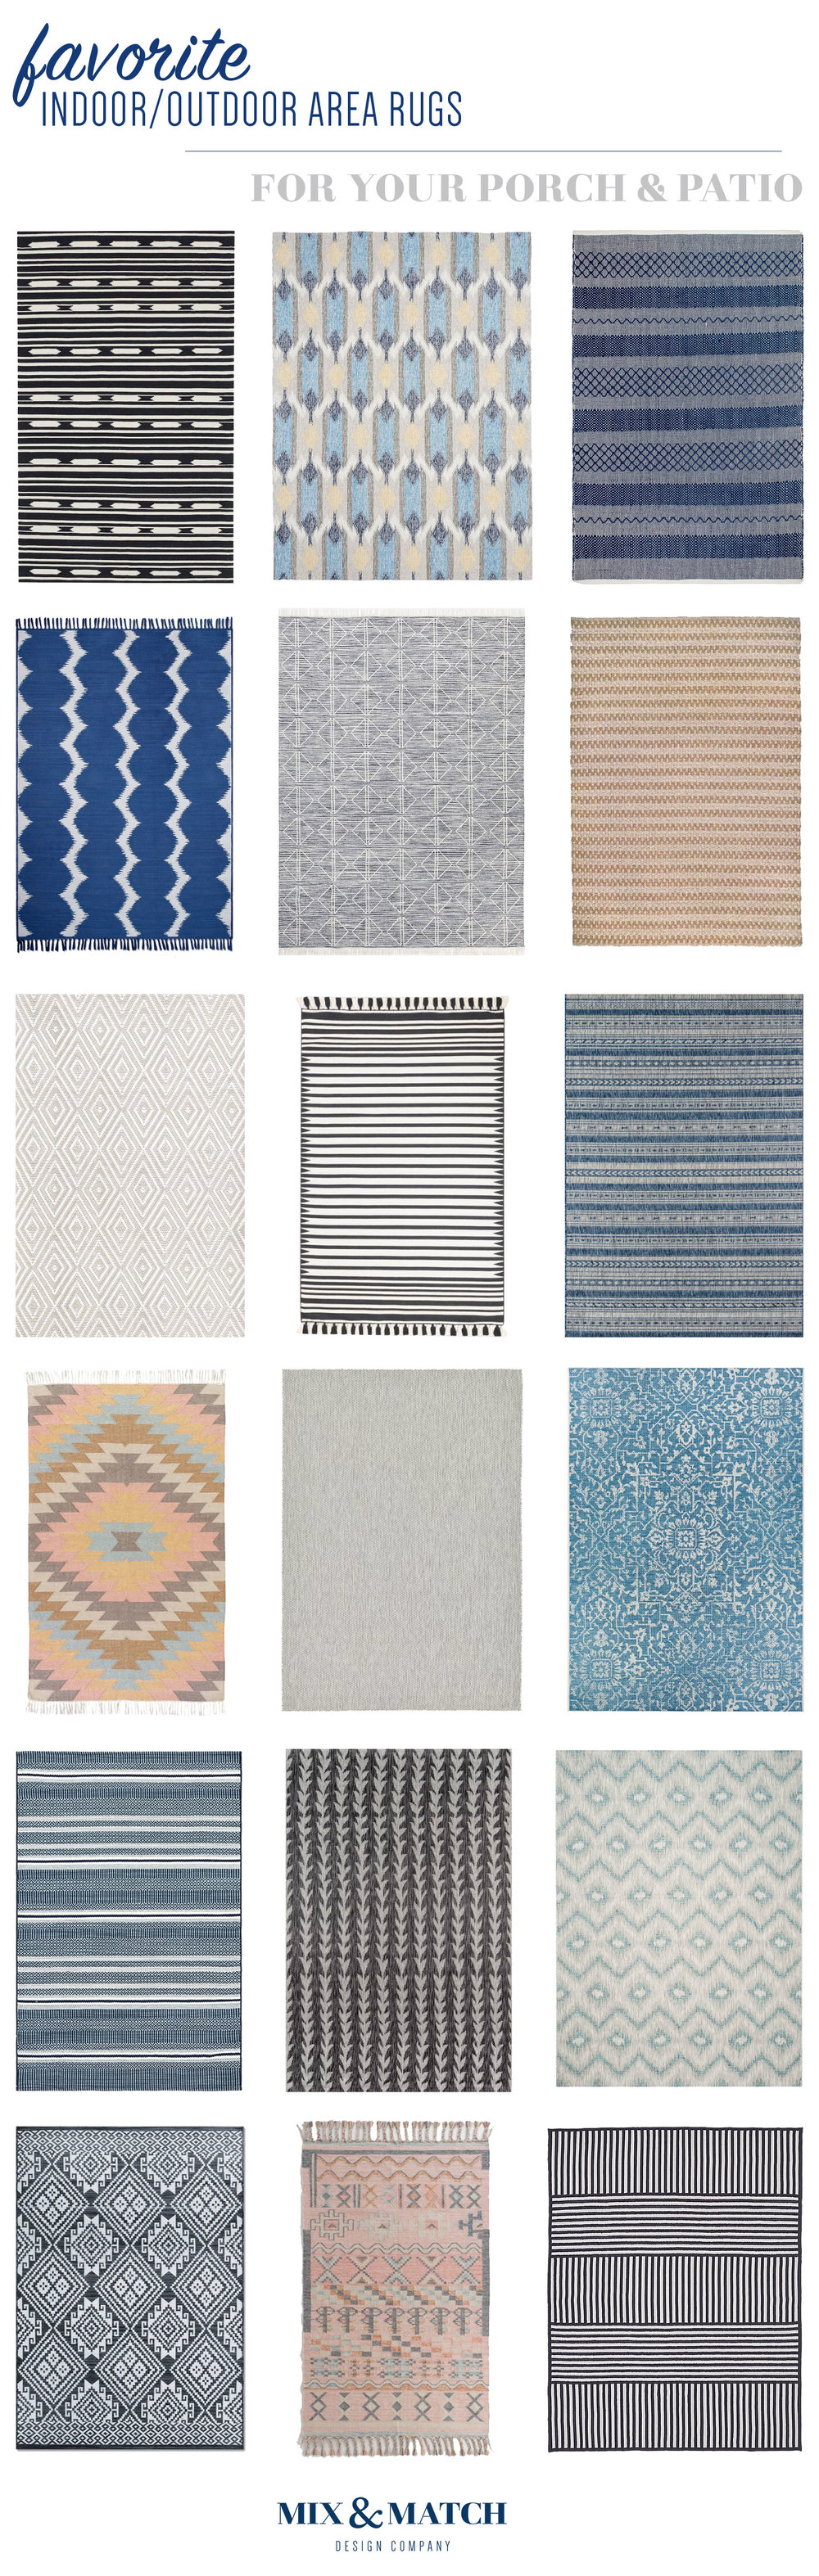 Looking for an indoor outdoor rug for your porch or patio? Look no further! I've rounded up 18 of my favorites from around the web to help you on your search. From modern to boho to geometric, I've got you covered.